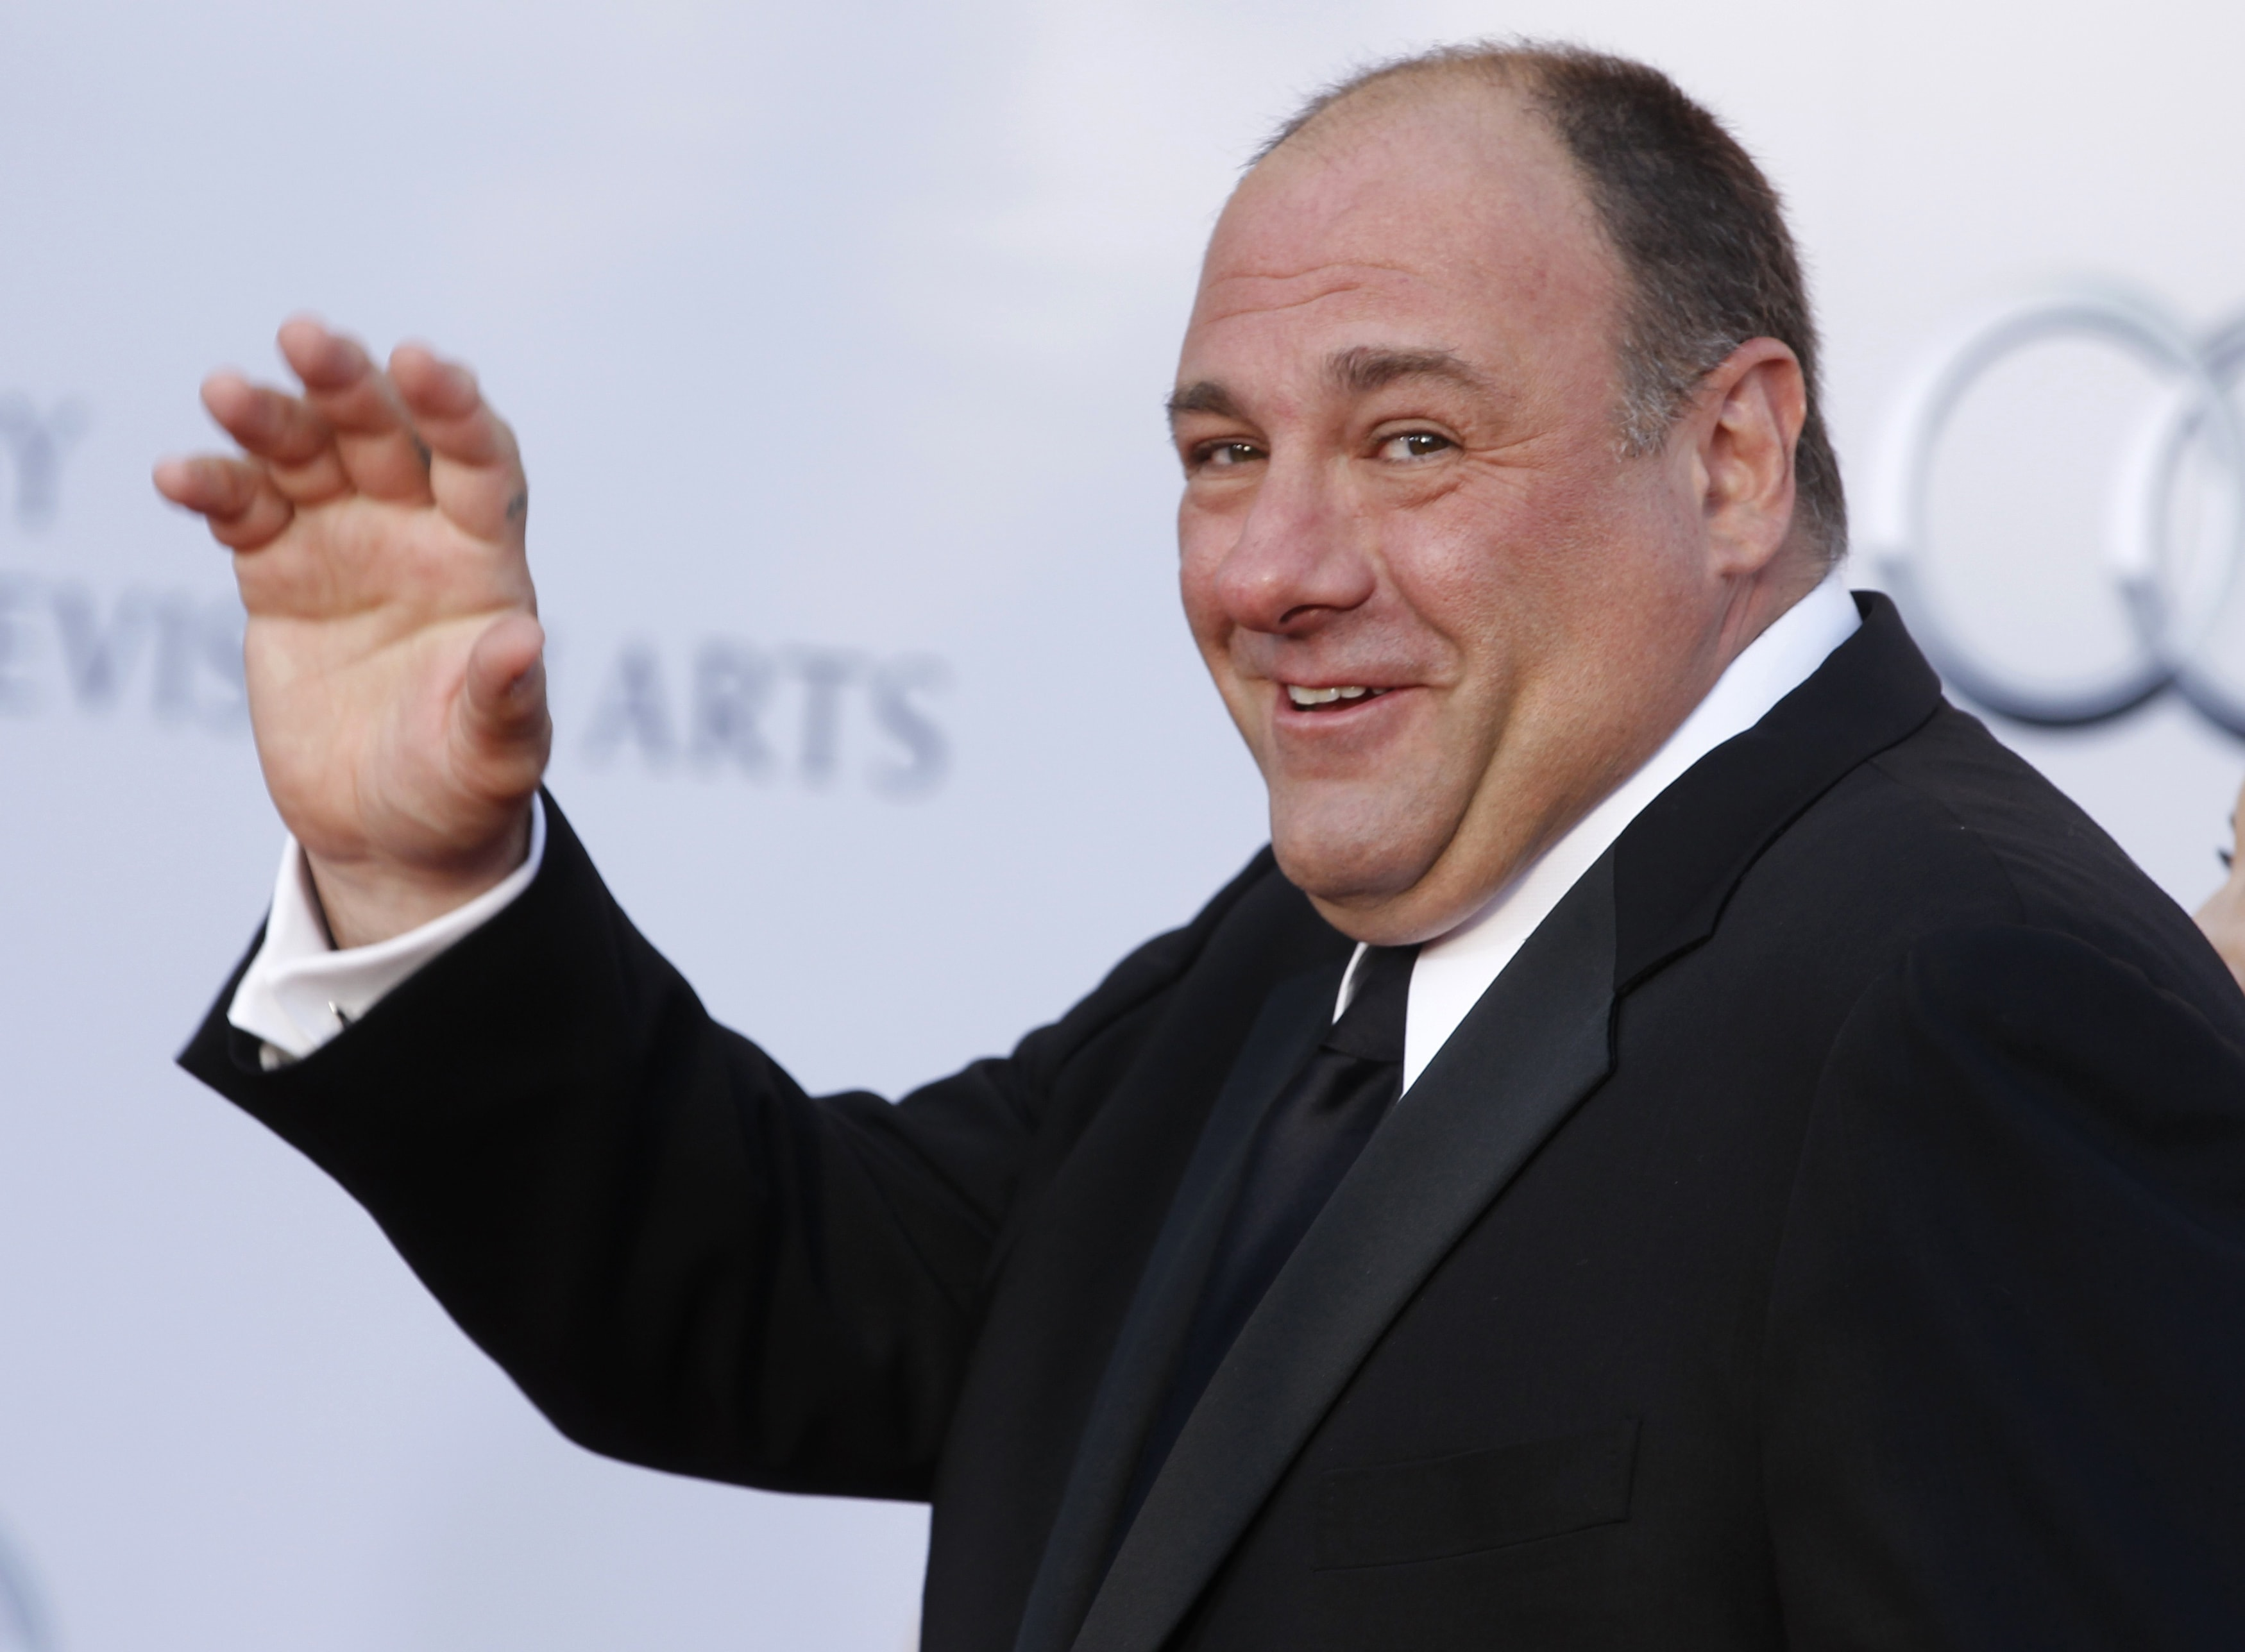 James Gandolfini Background